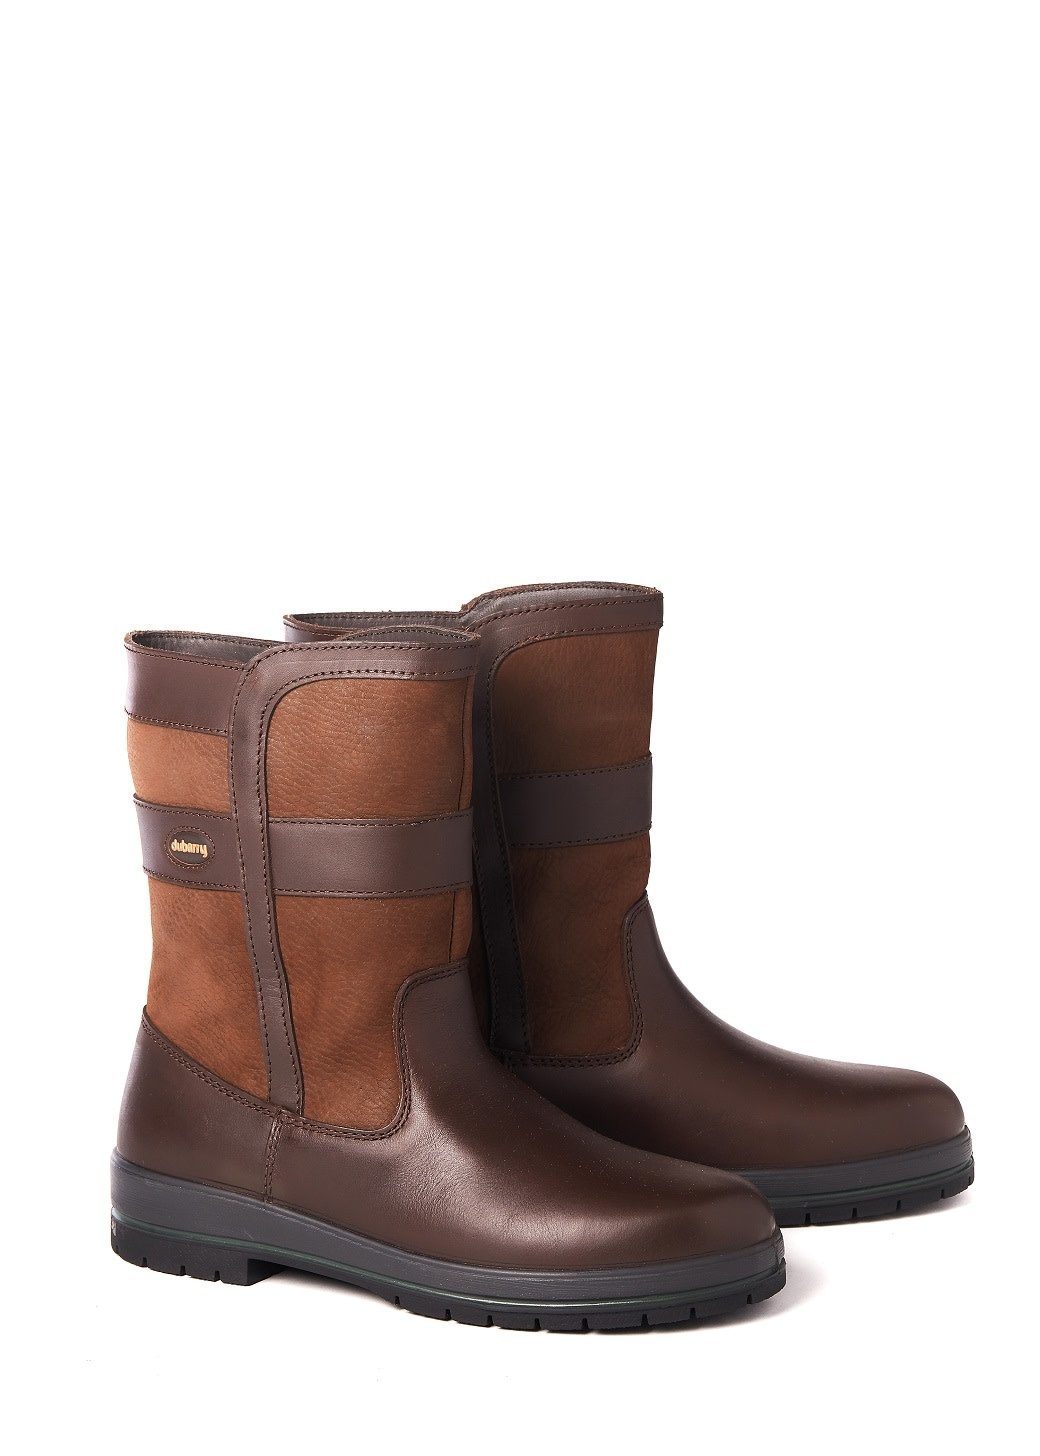 Dubarry Roscommon - Walnut-2